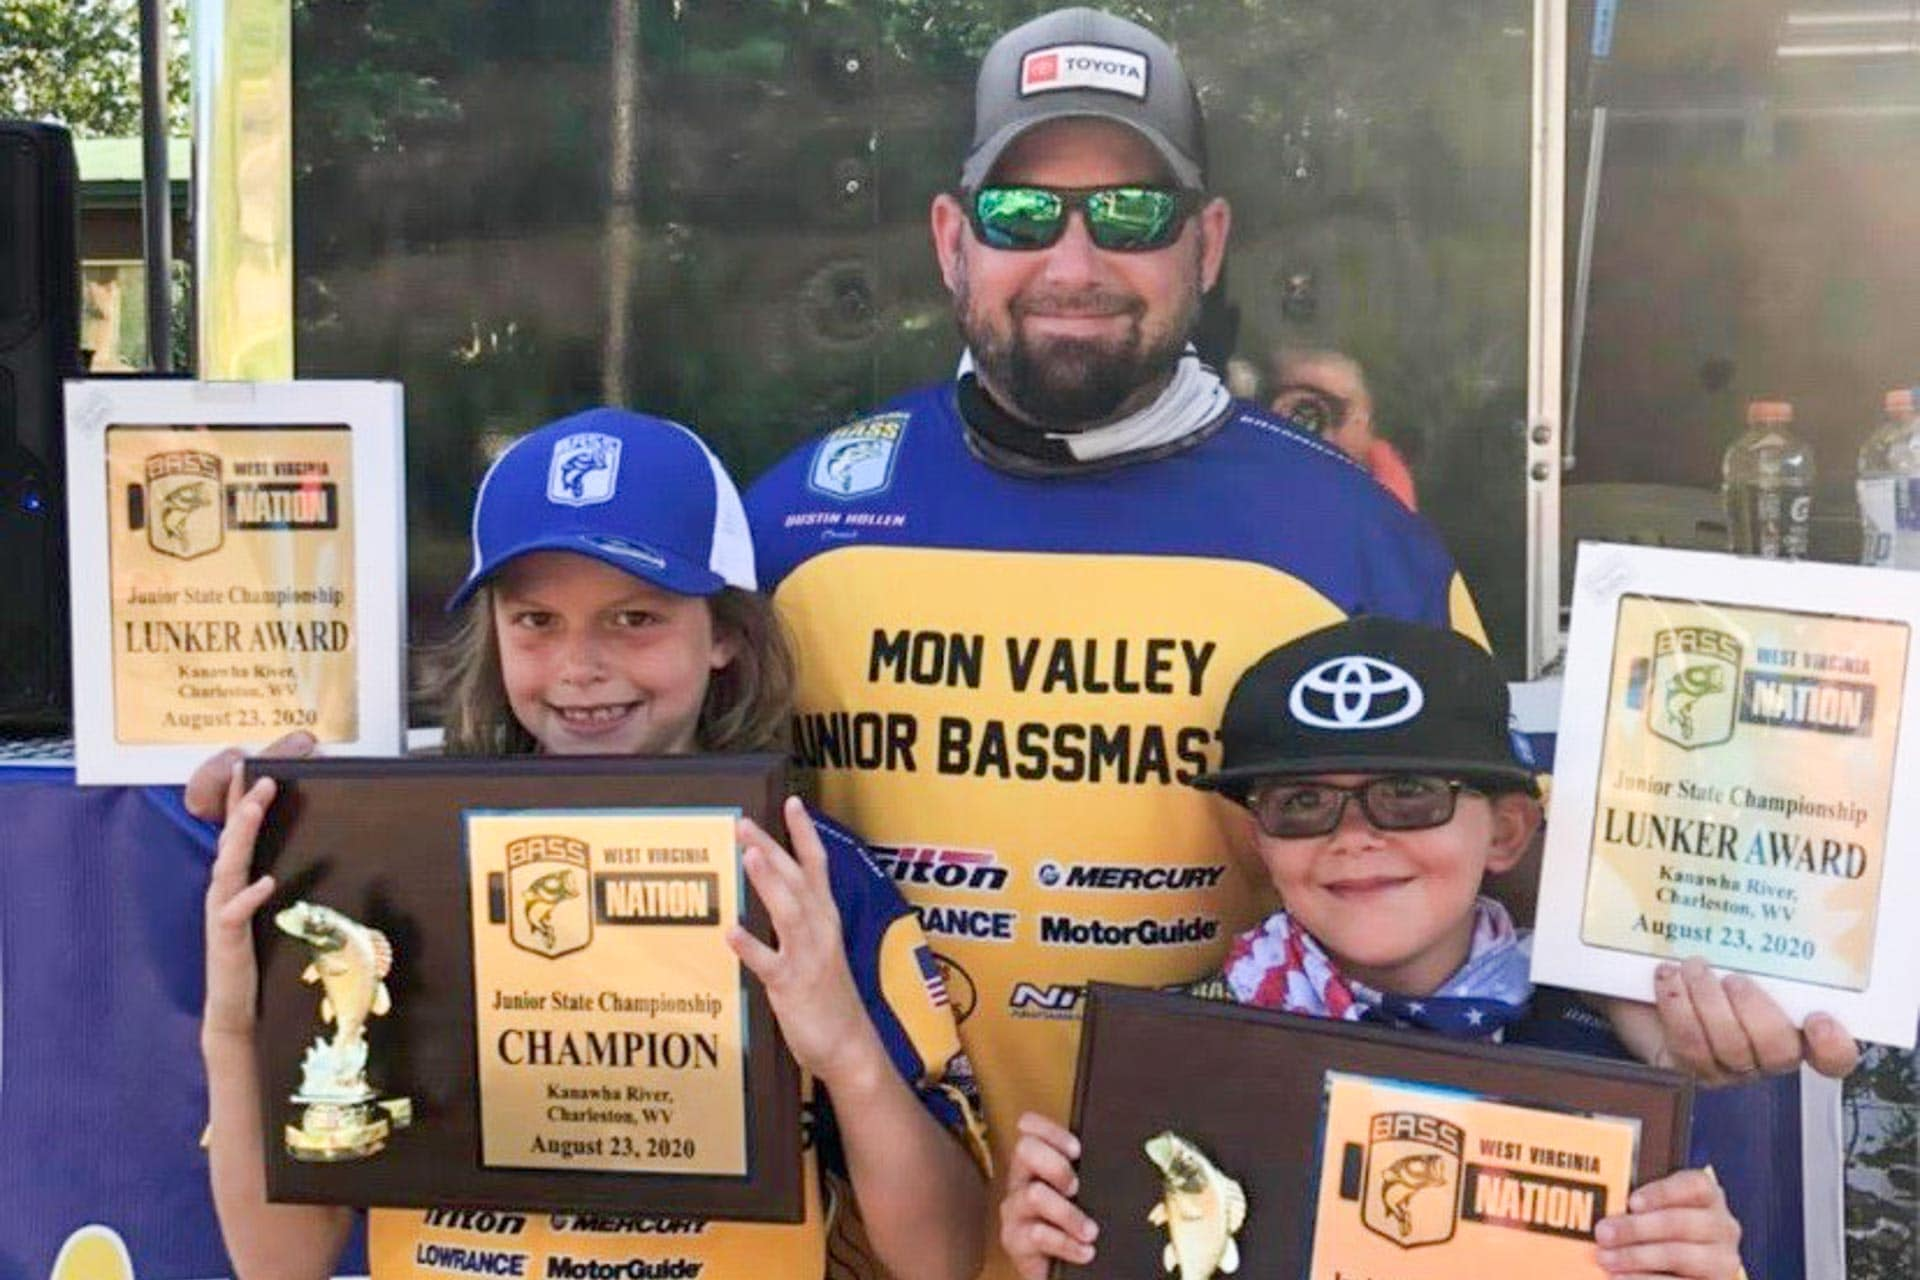 Buckhannon youth reels in state title at 2020 B.A.S.S. Nation Junior Championship